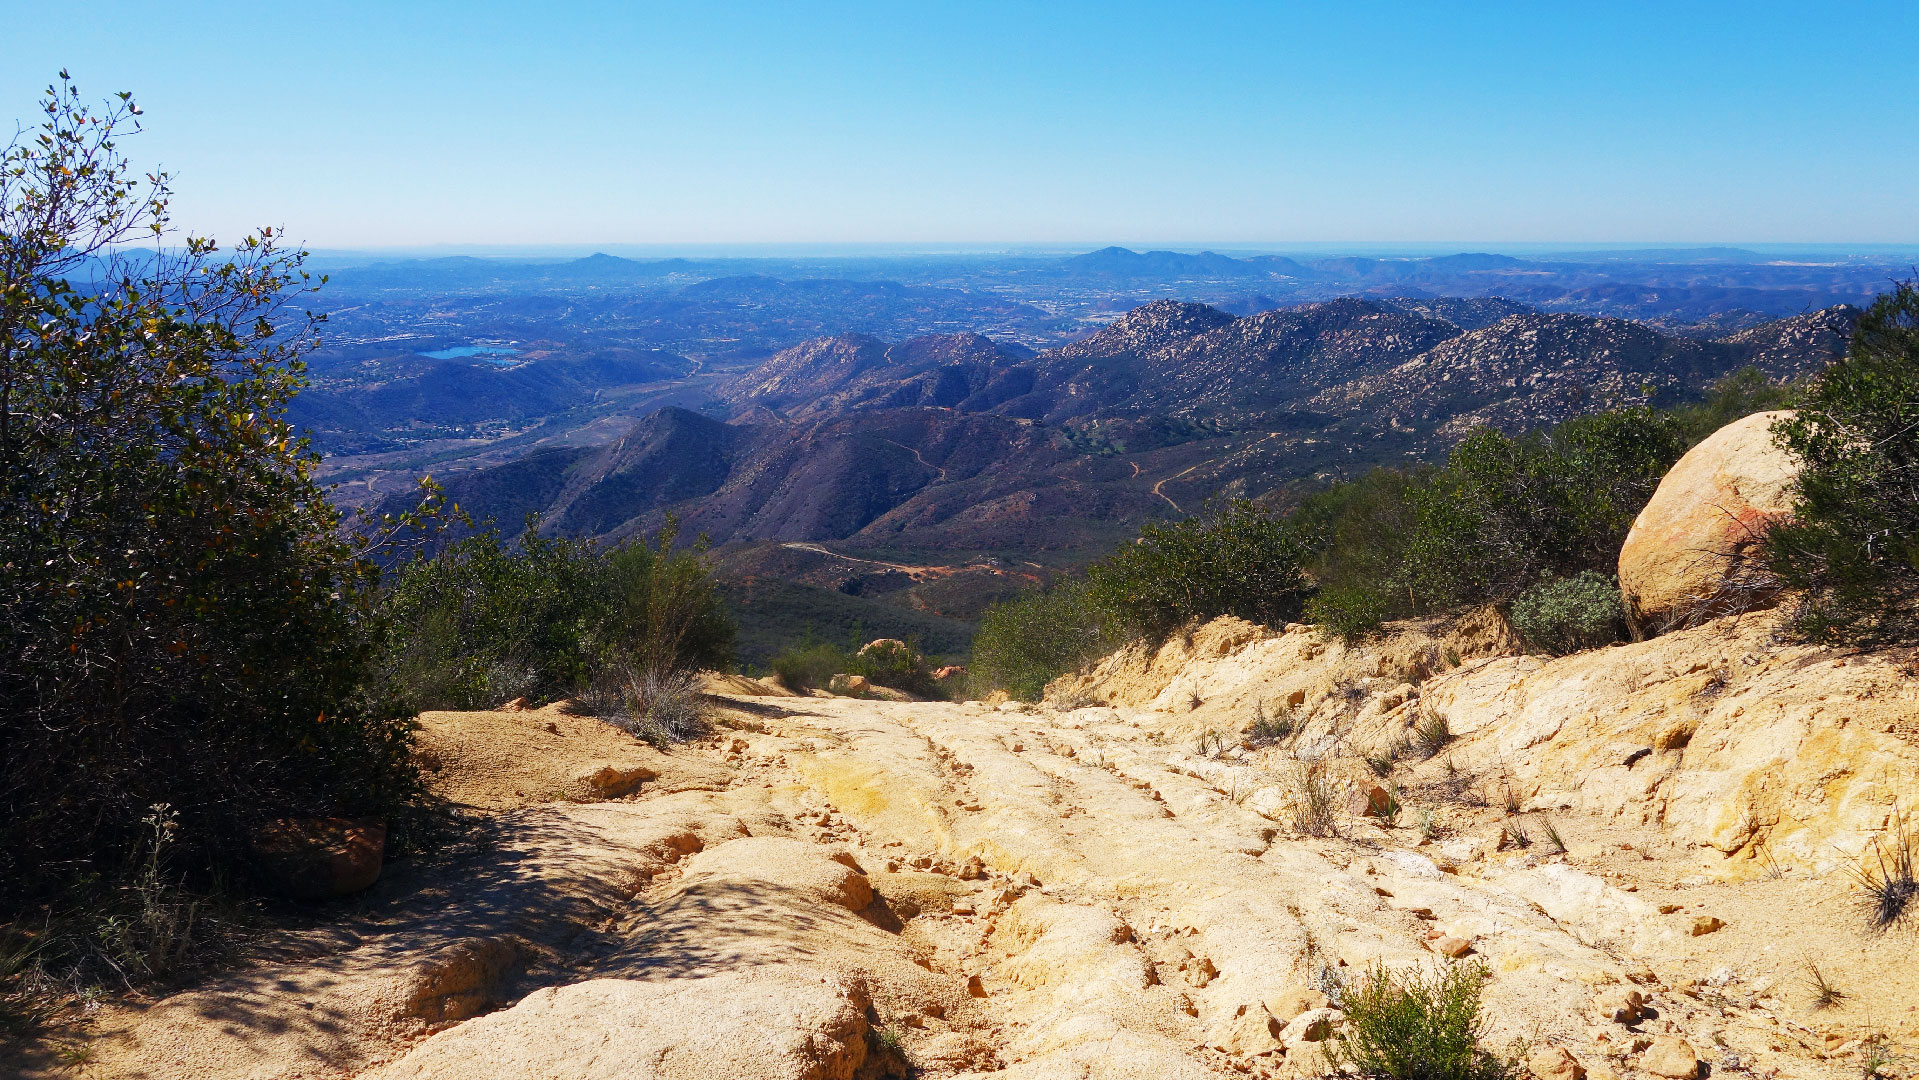 Rugged Trail Ahead on El Cajon Mountain